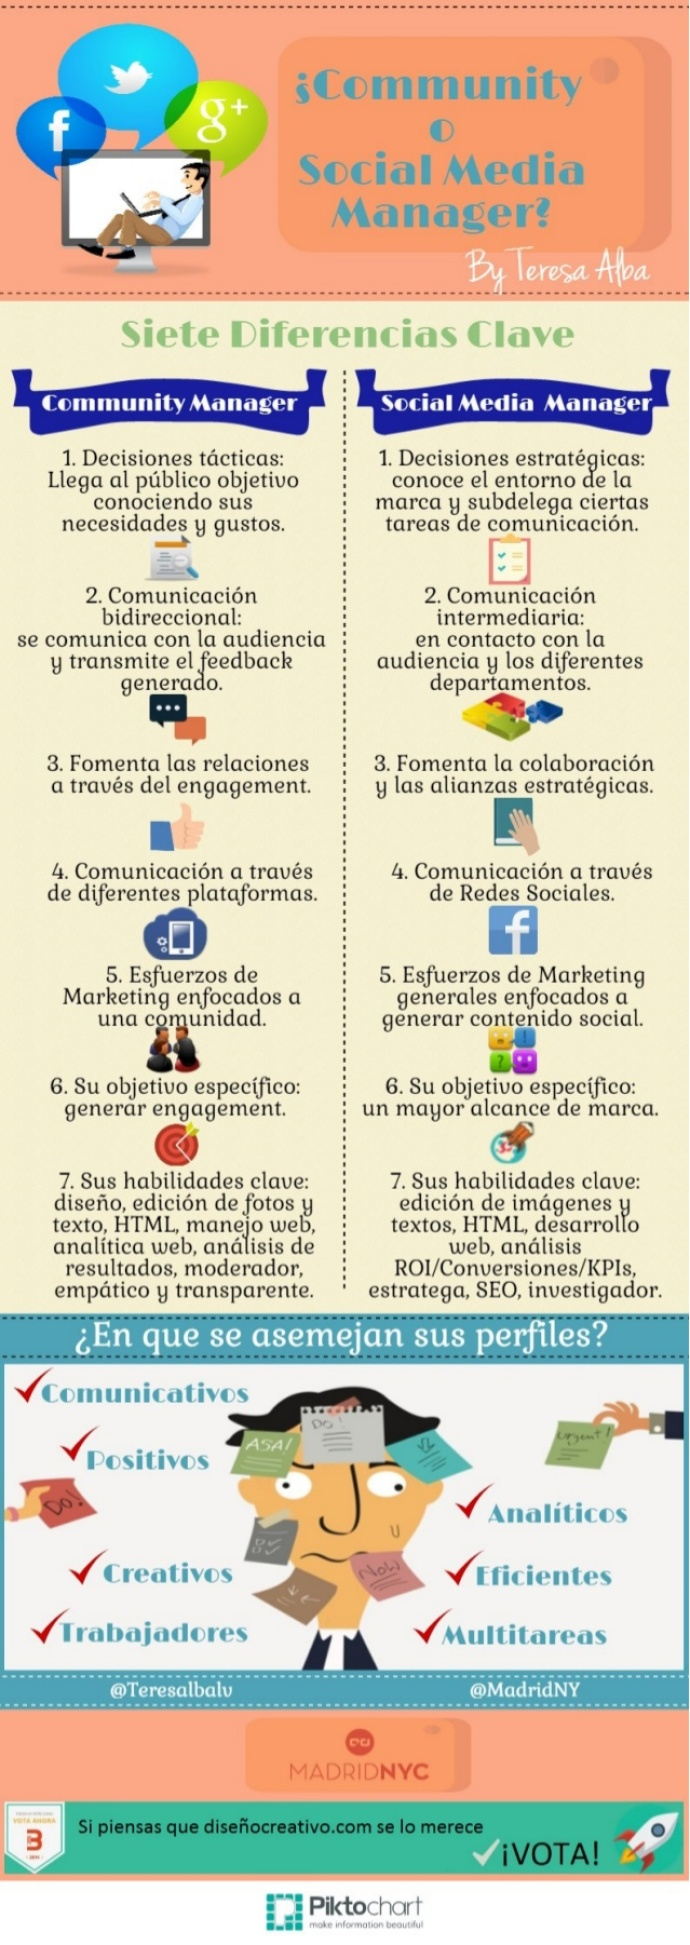 7 diferencias entre Community y Social Media Manager